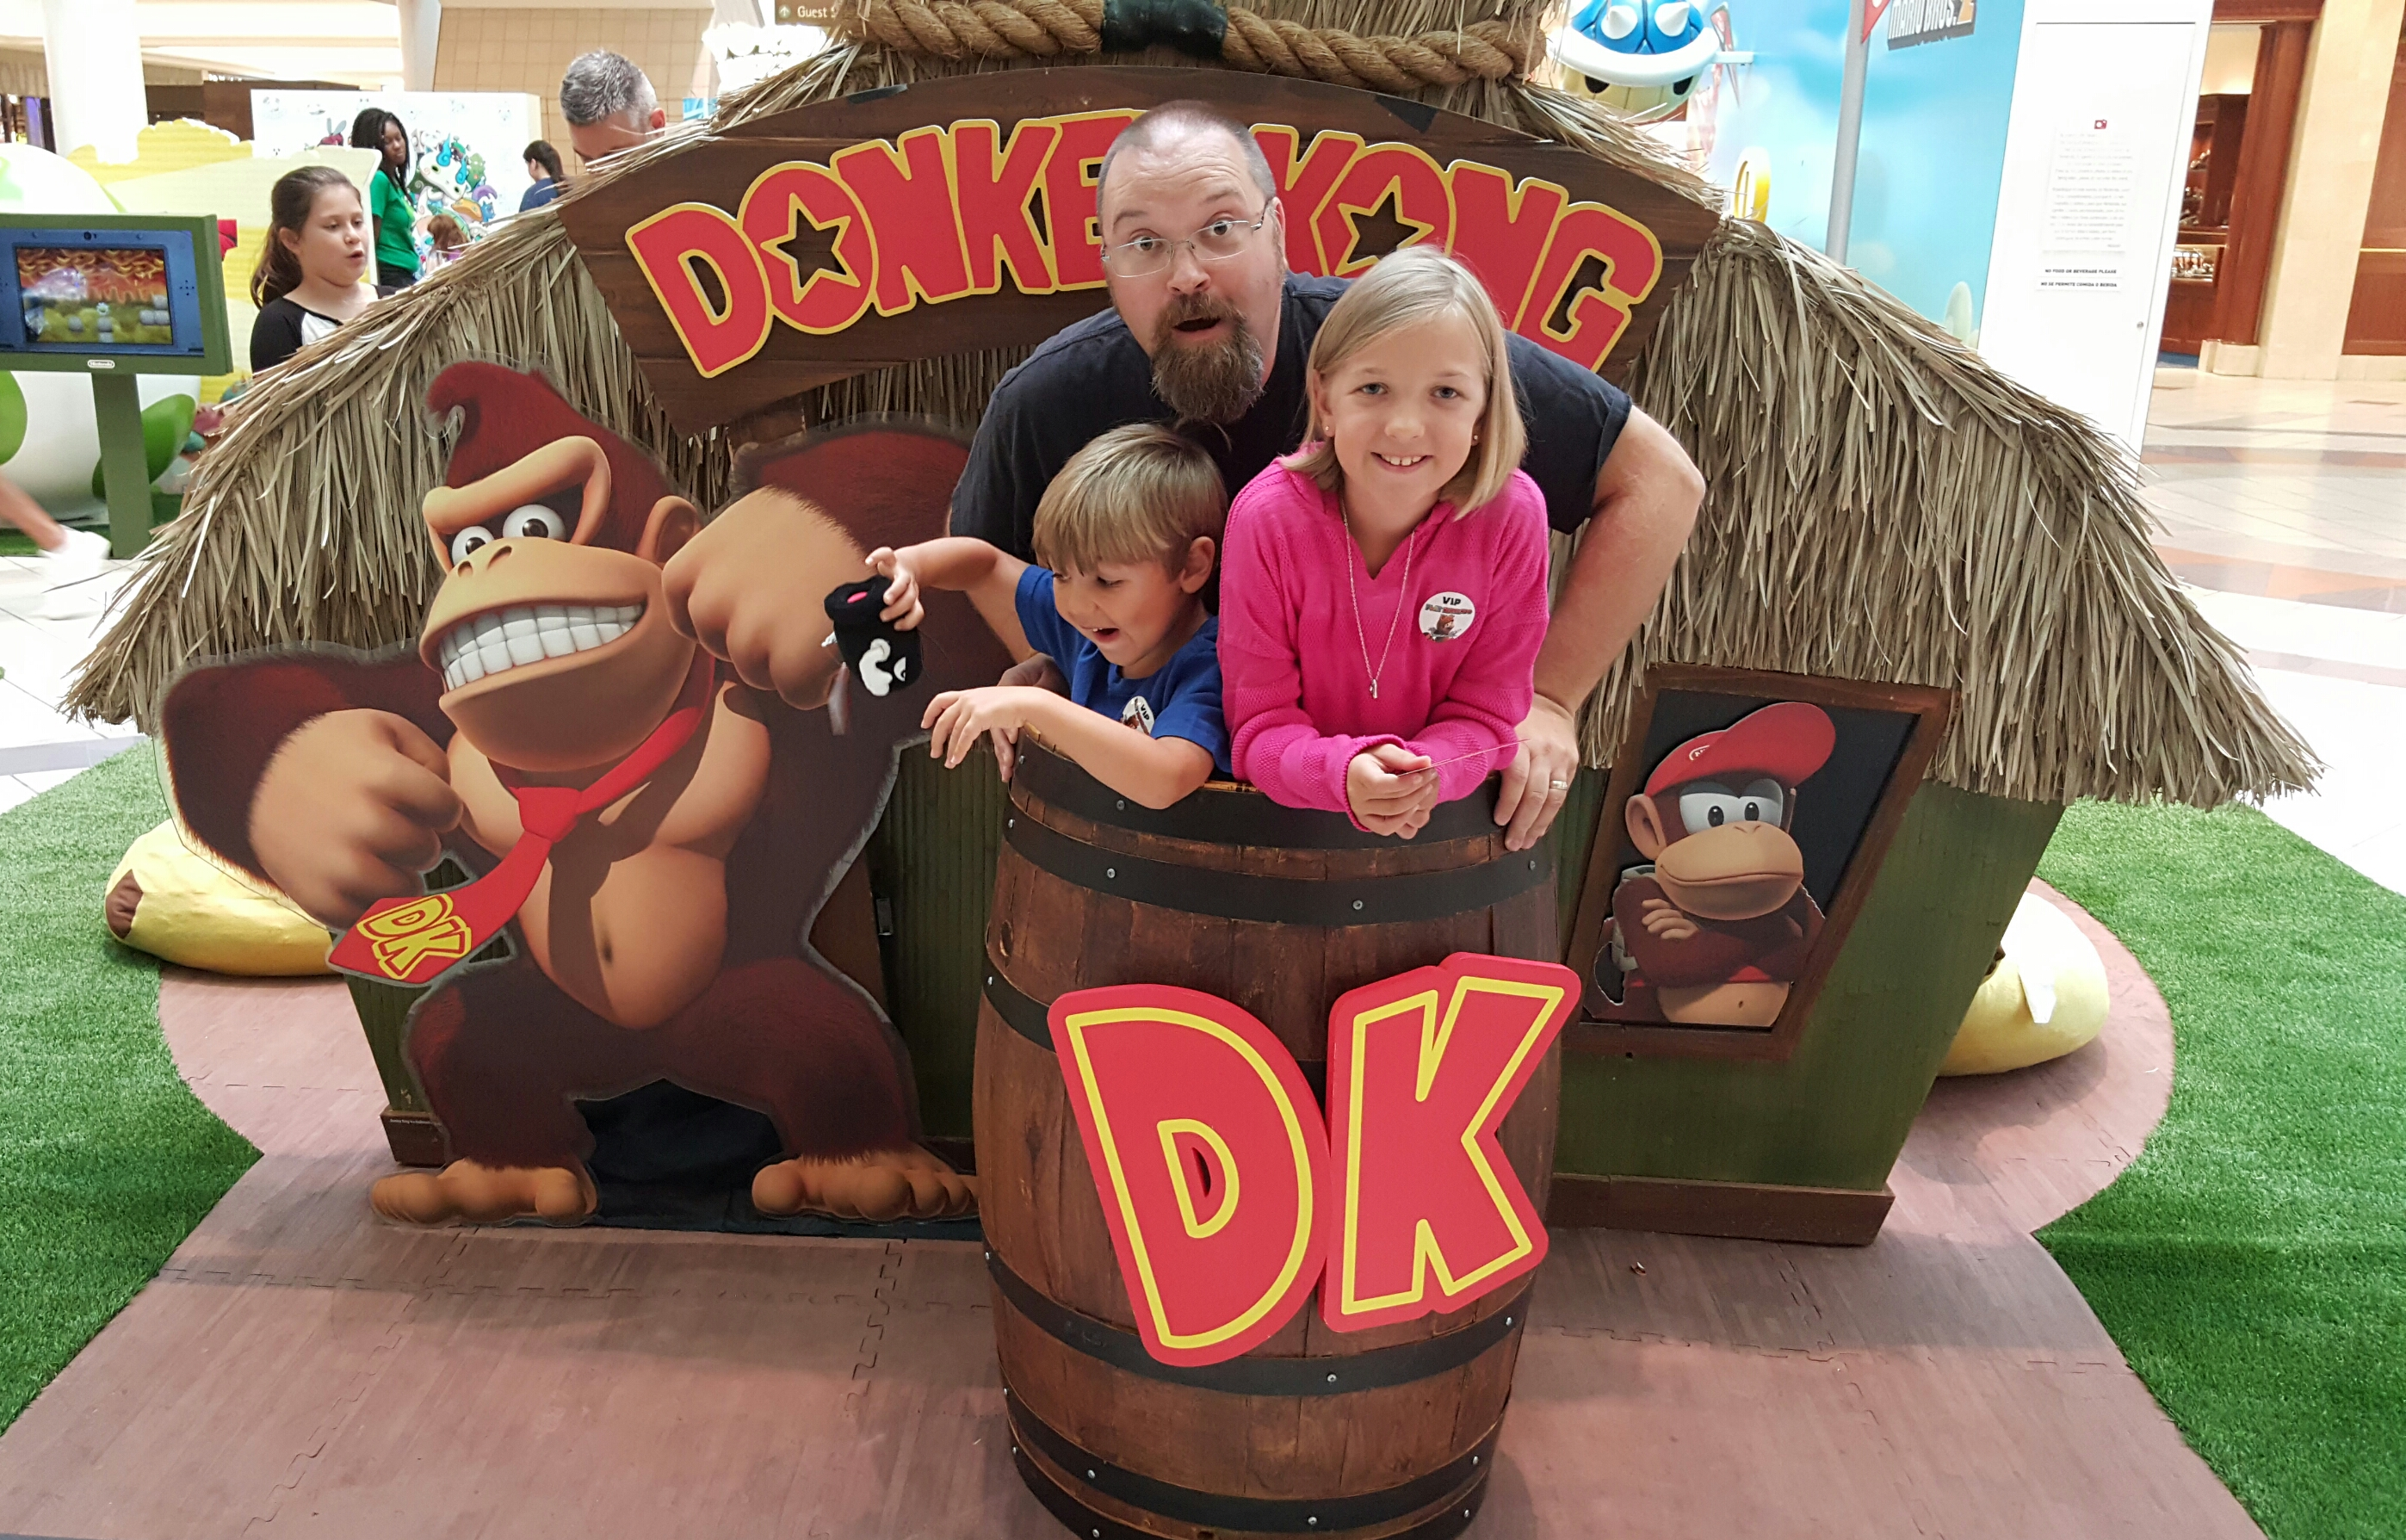 In a Barrel for Donkey Kong